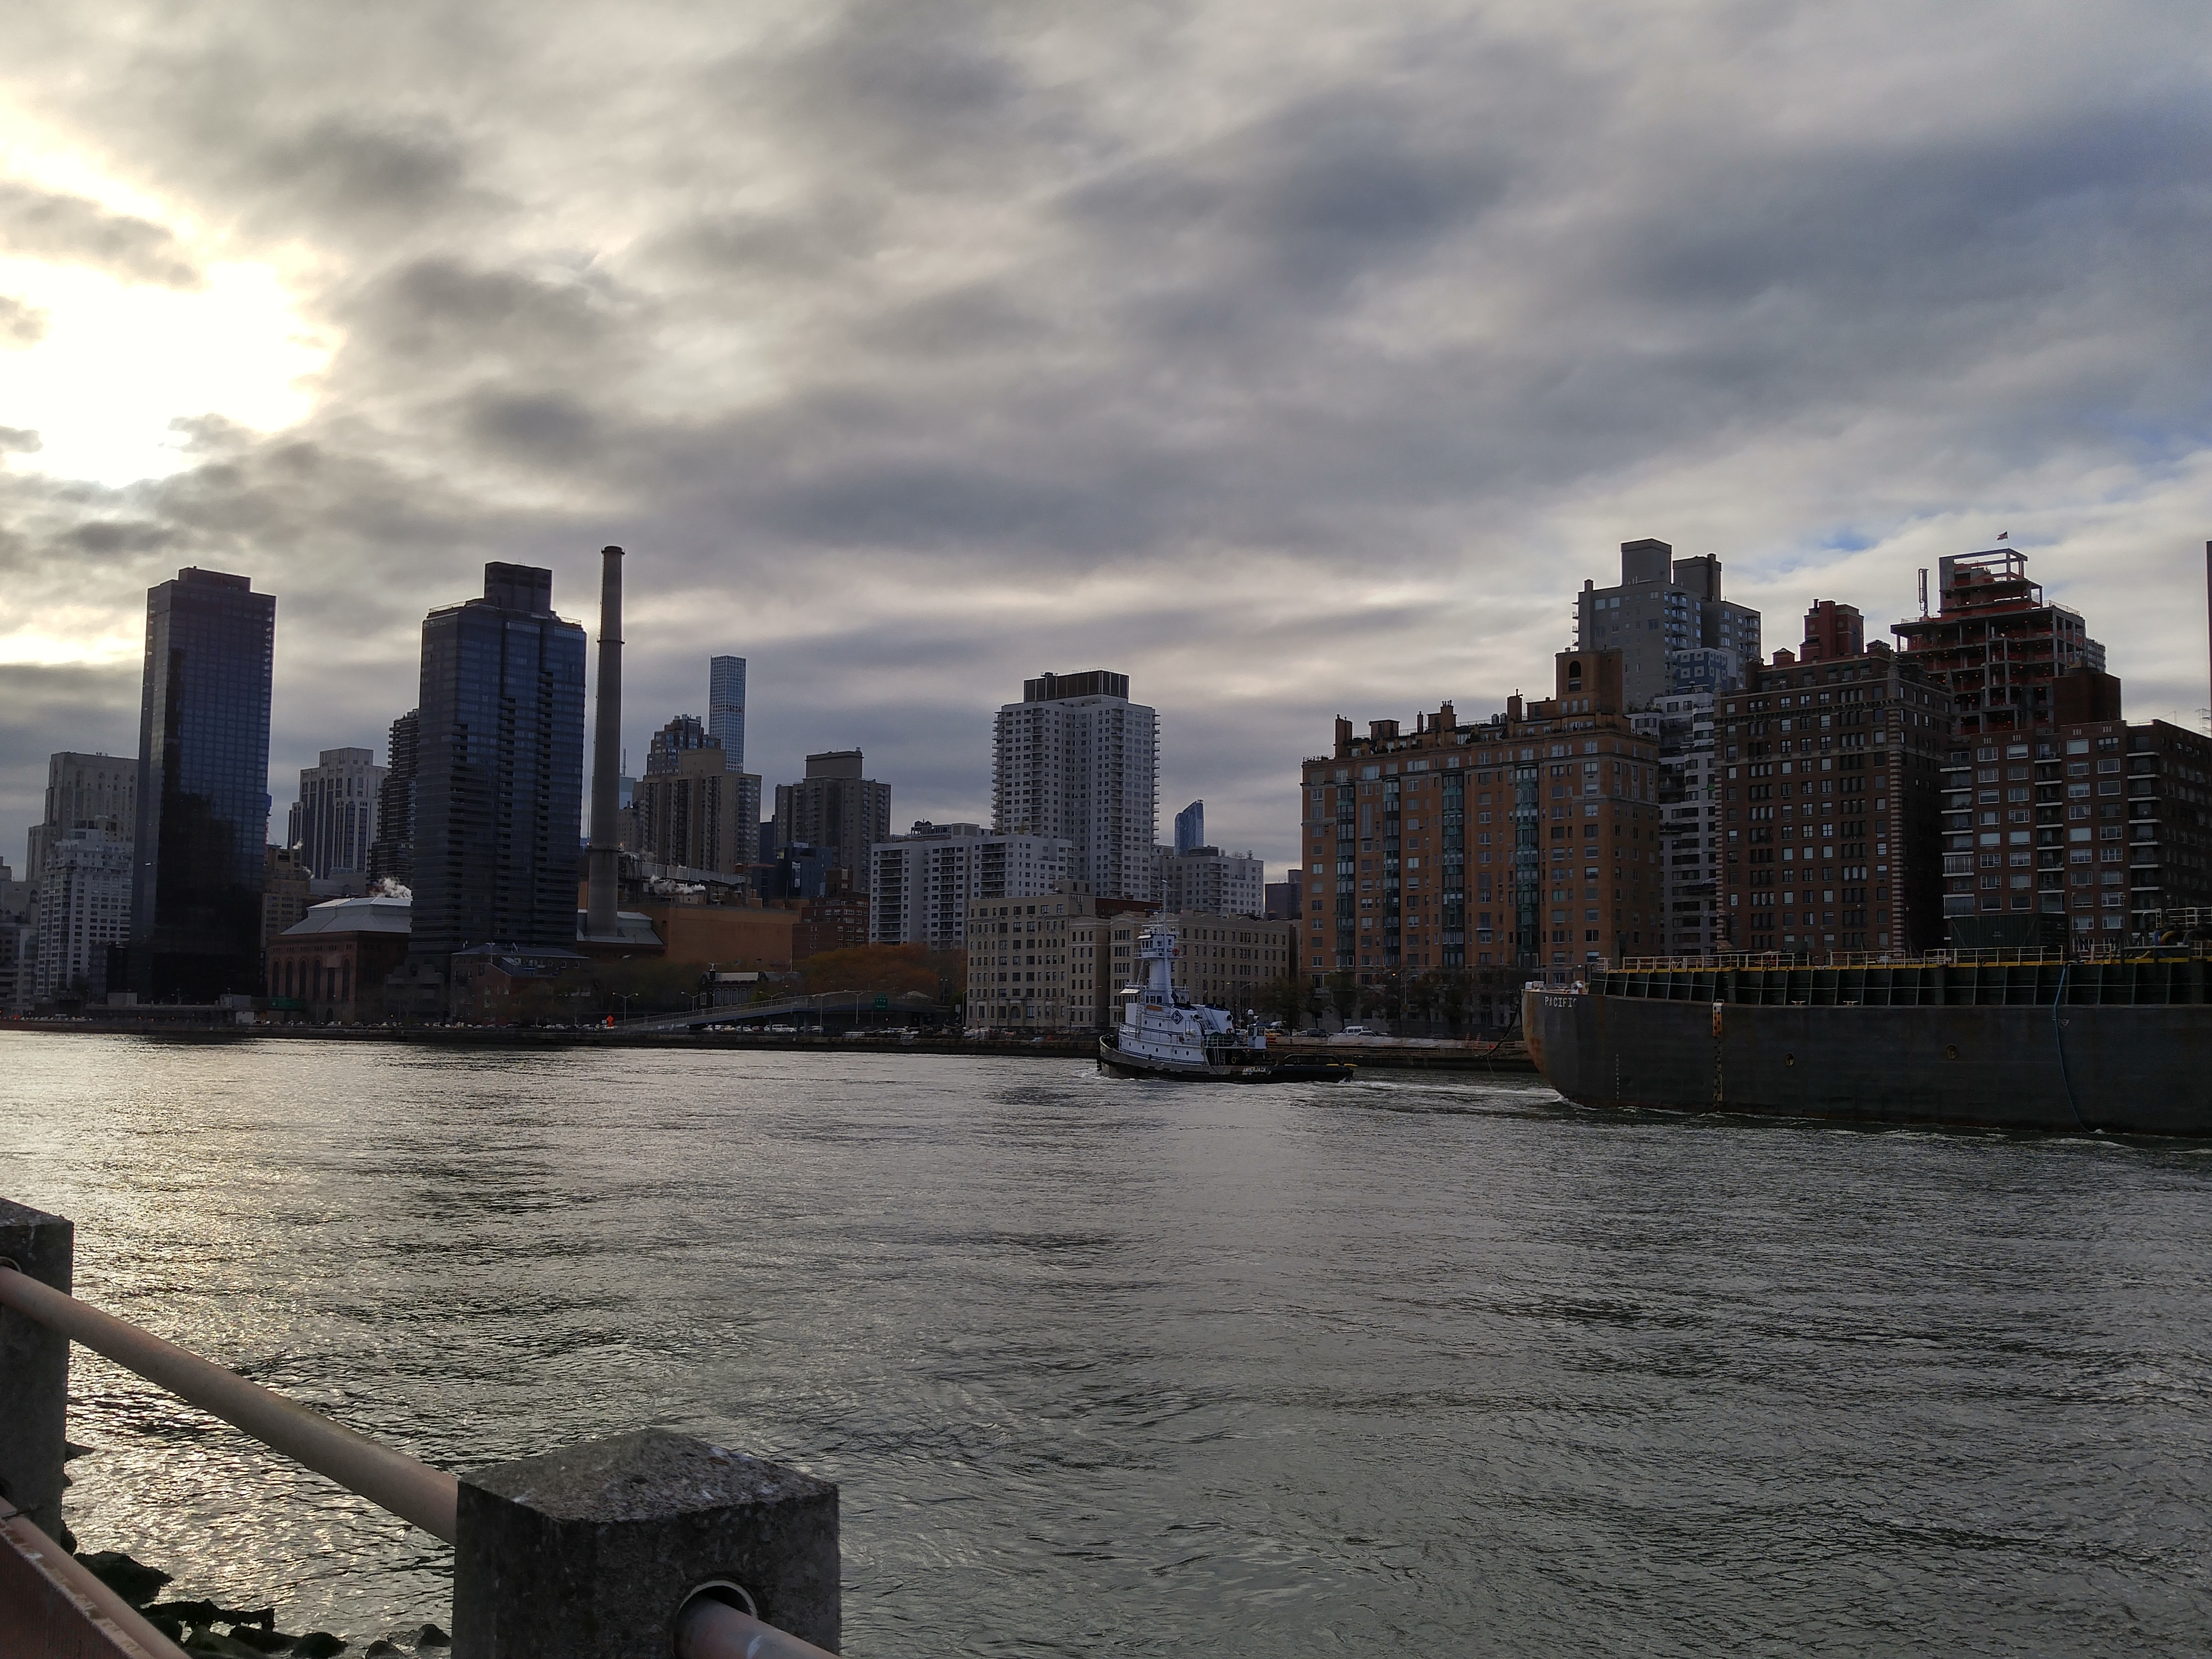 There's a beautiful view of Manhattan ready for you!